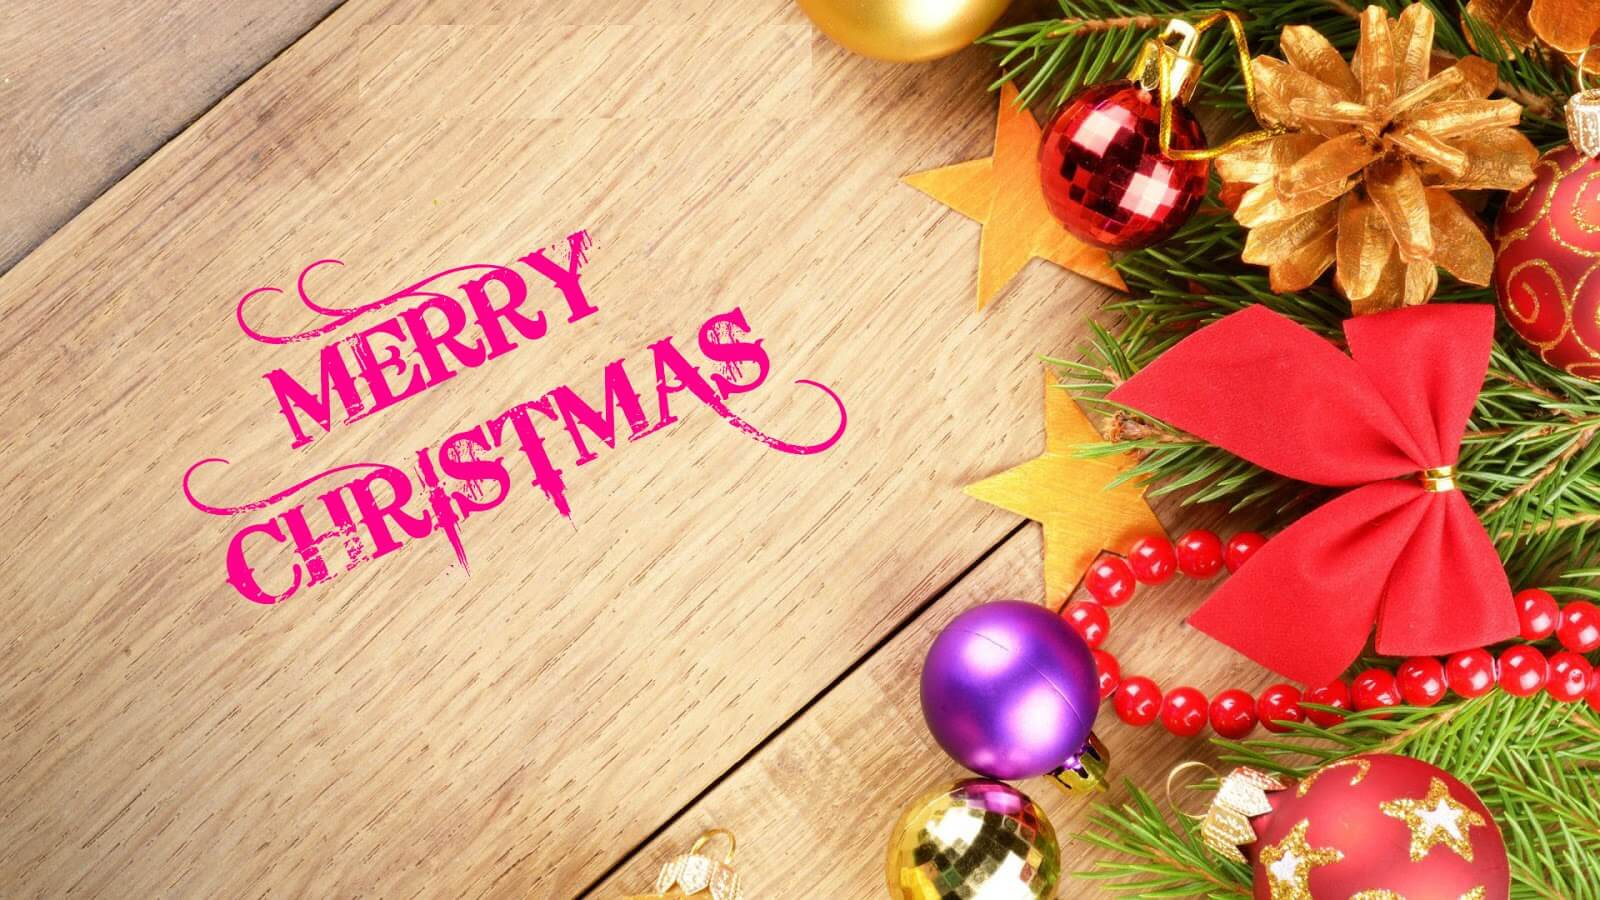 TOP Merry Christmas Whatsapp Status Quotes 2018 - FungiStaaan